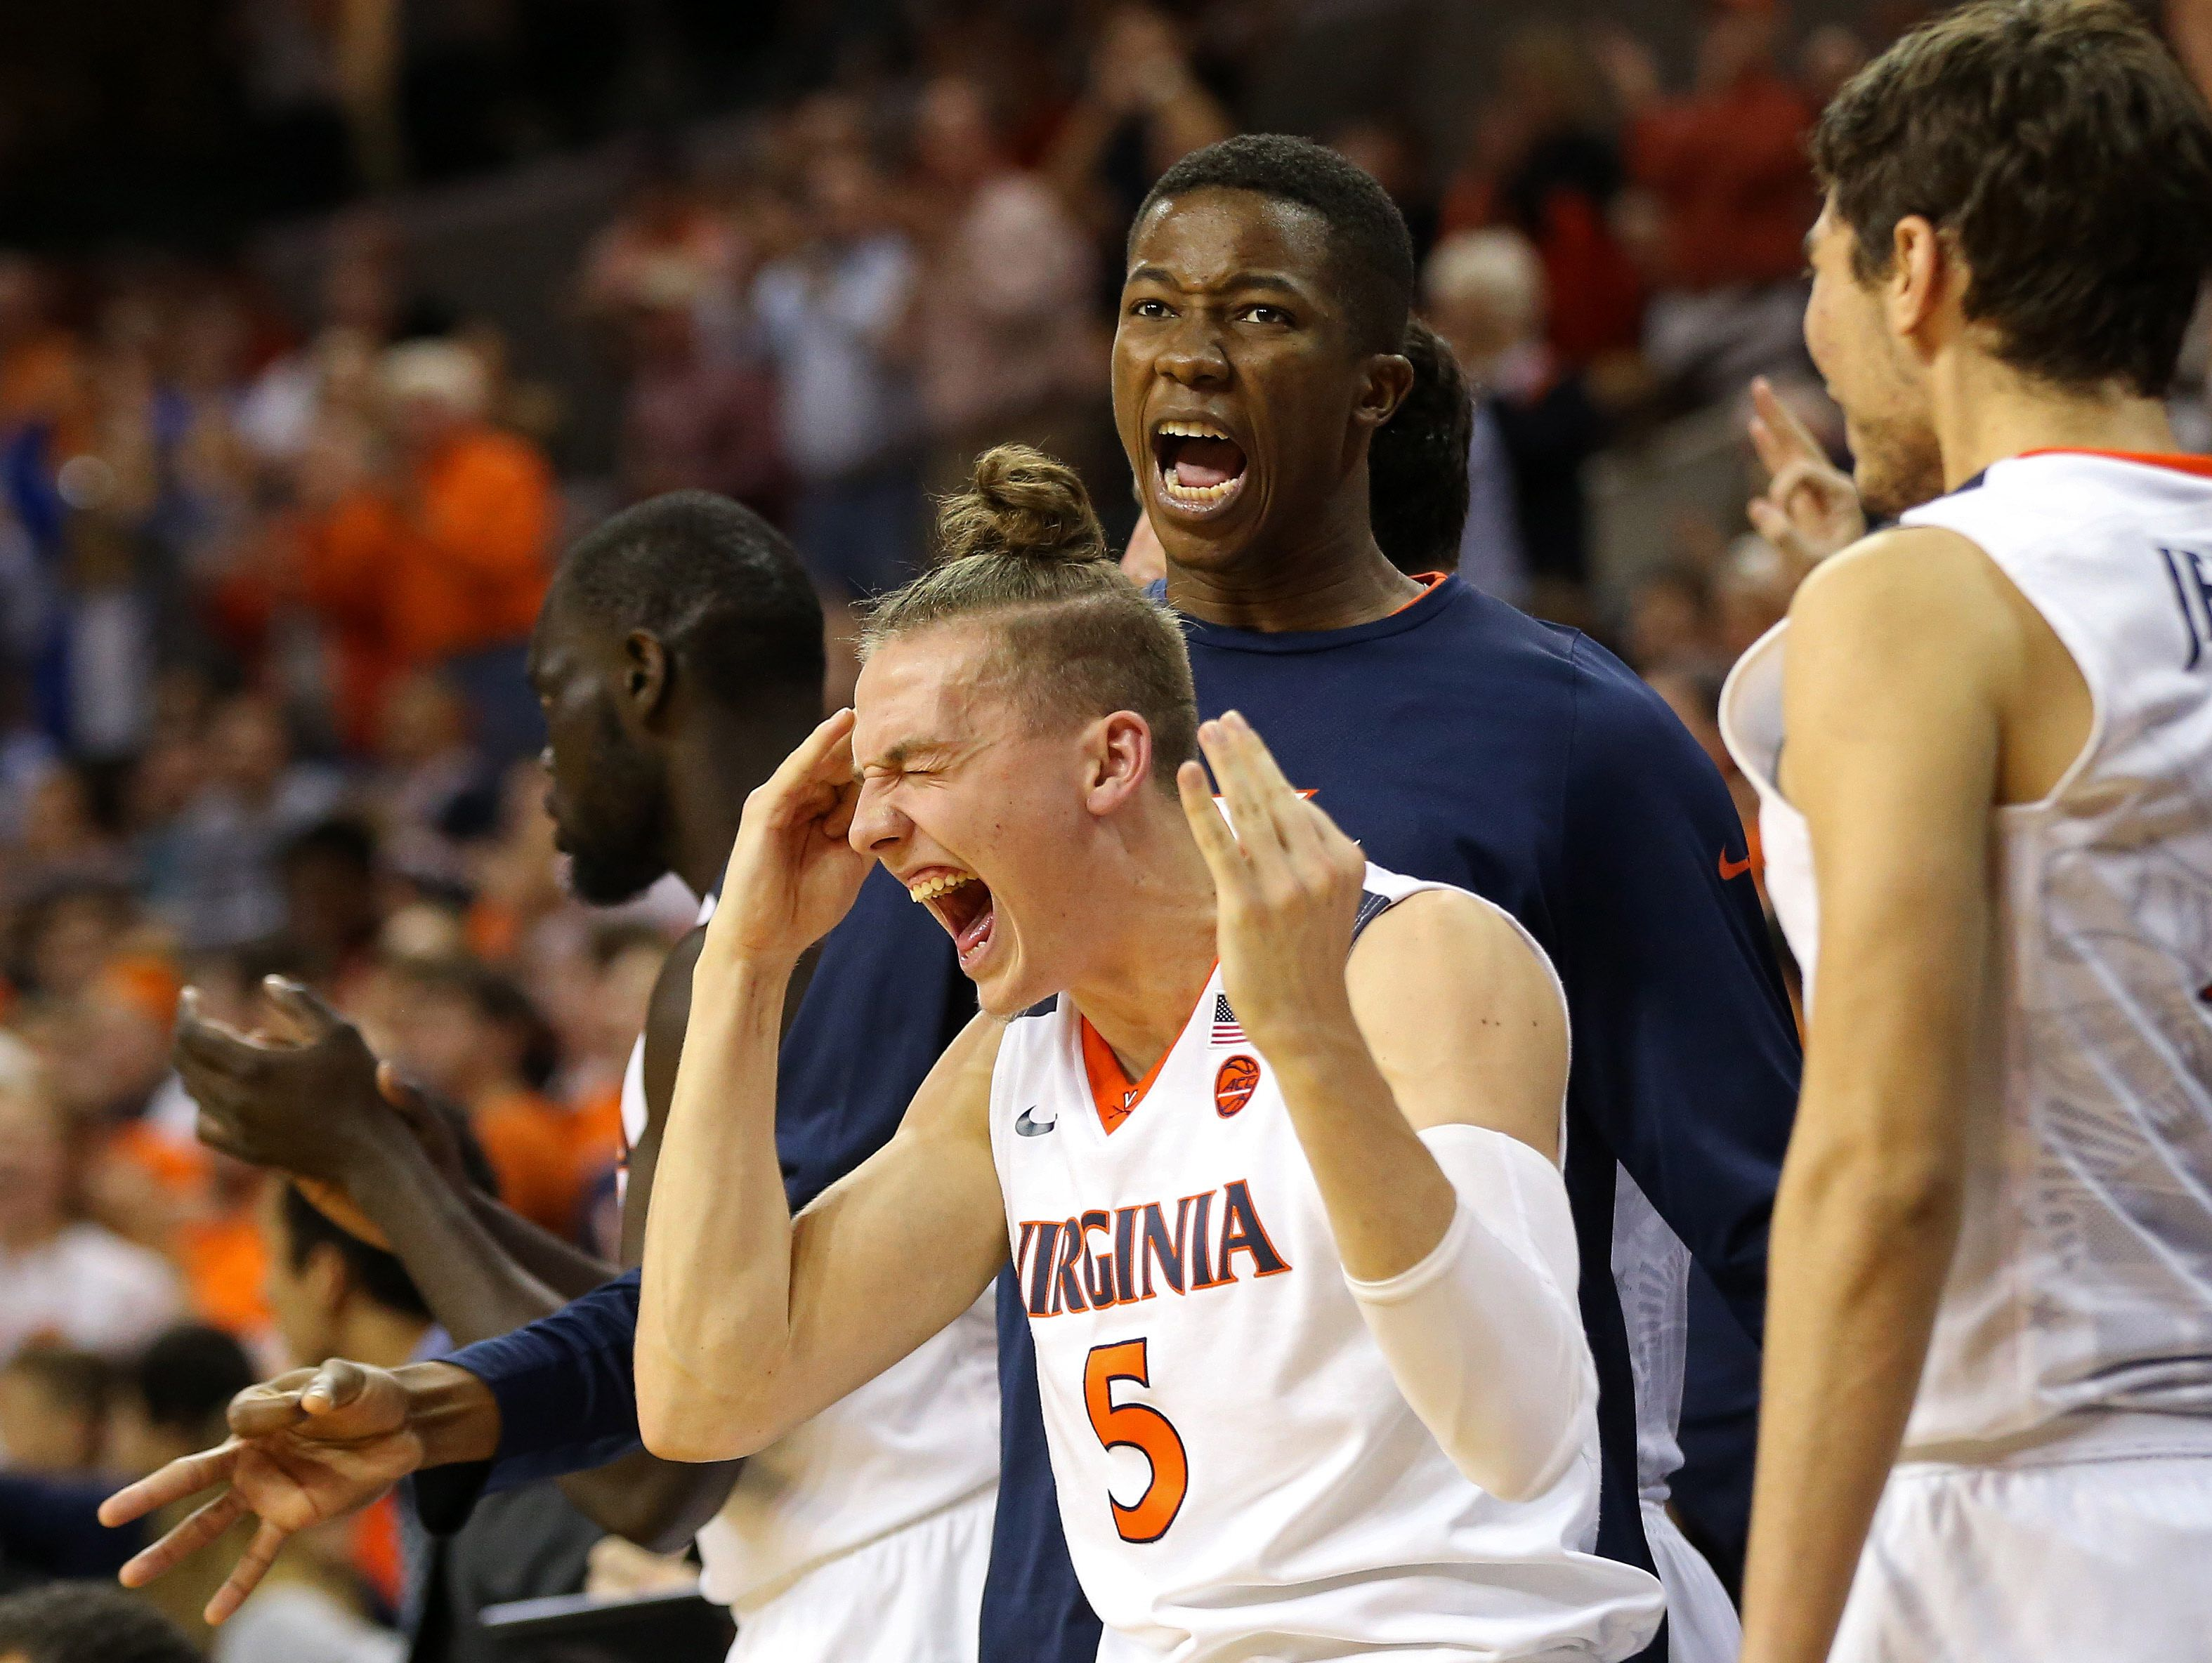 Virginia guard Kyle Guy (5) celebrates o the bench against the Ohio State Buckeyes in the second half at John Paul Jones Arena. The Cavaliers won 63-61.